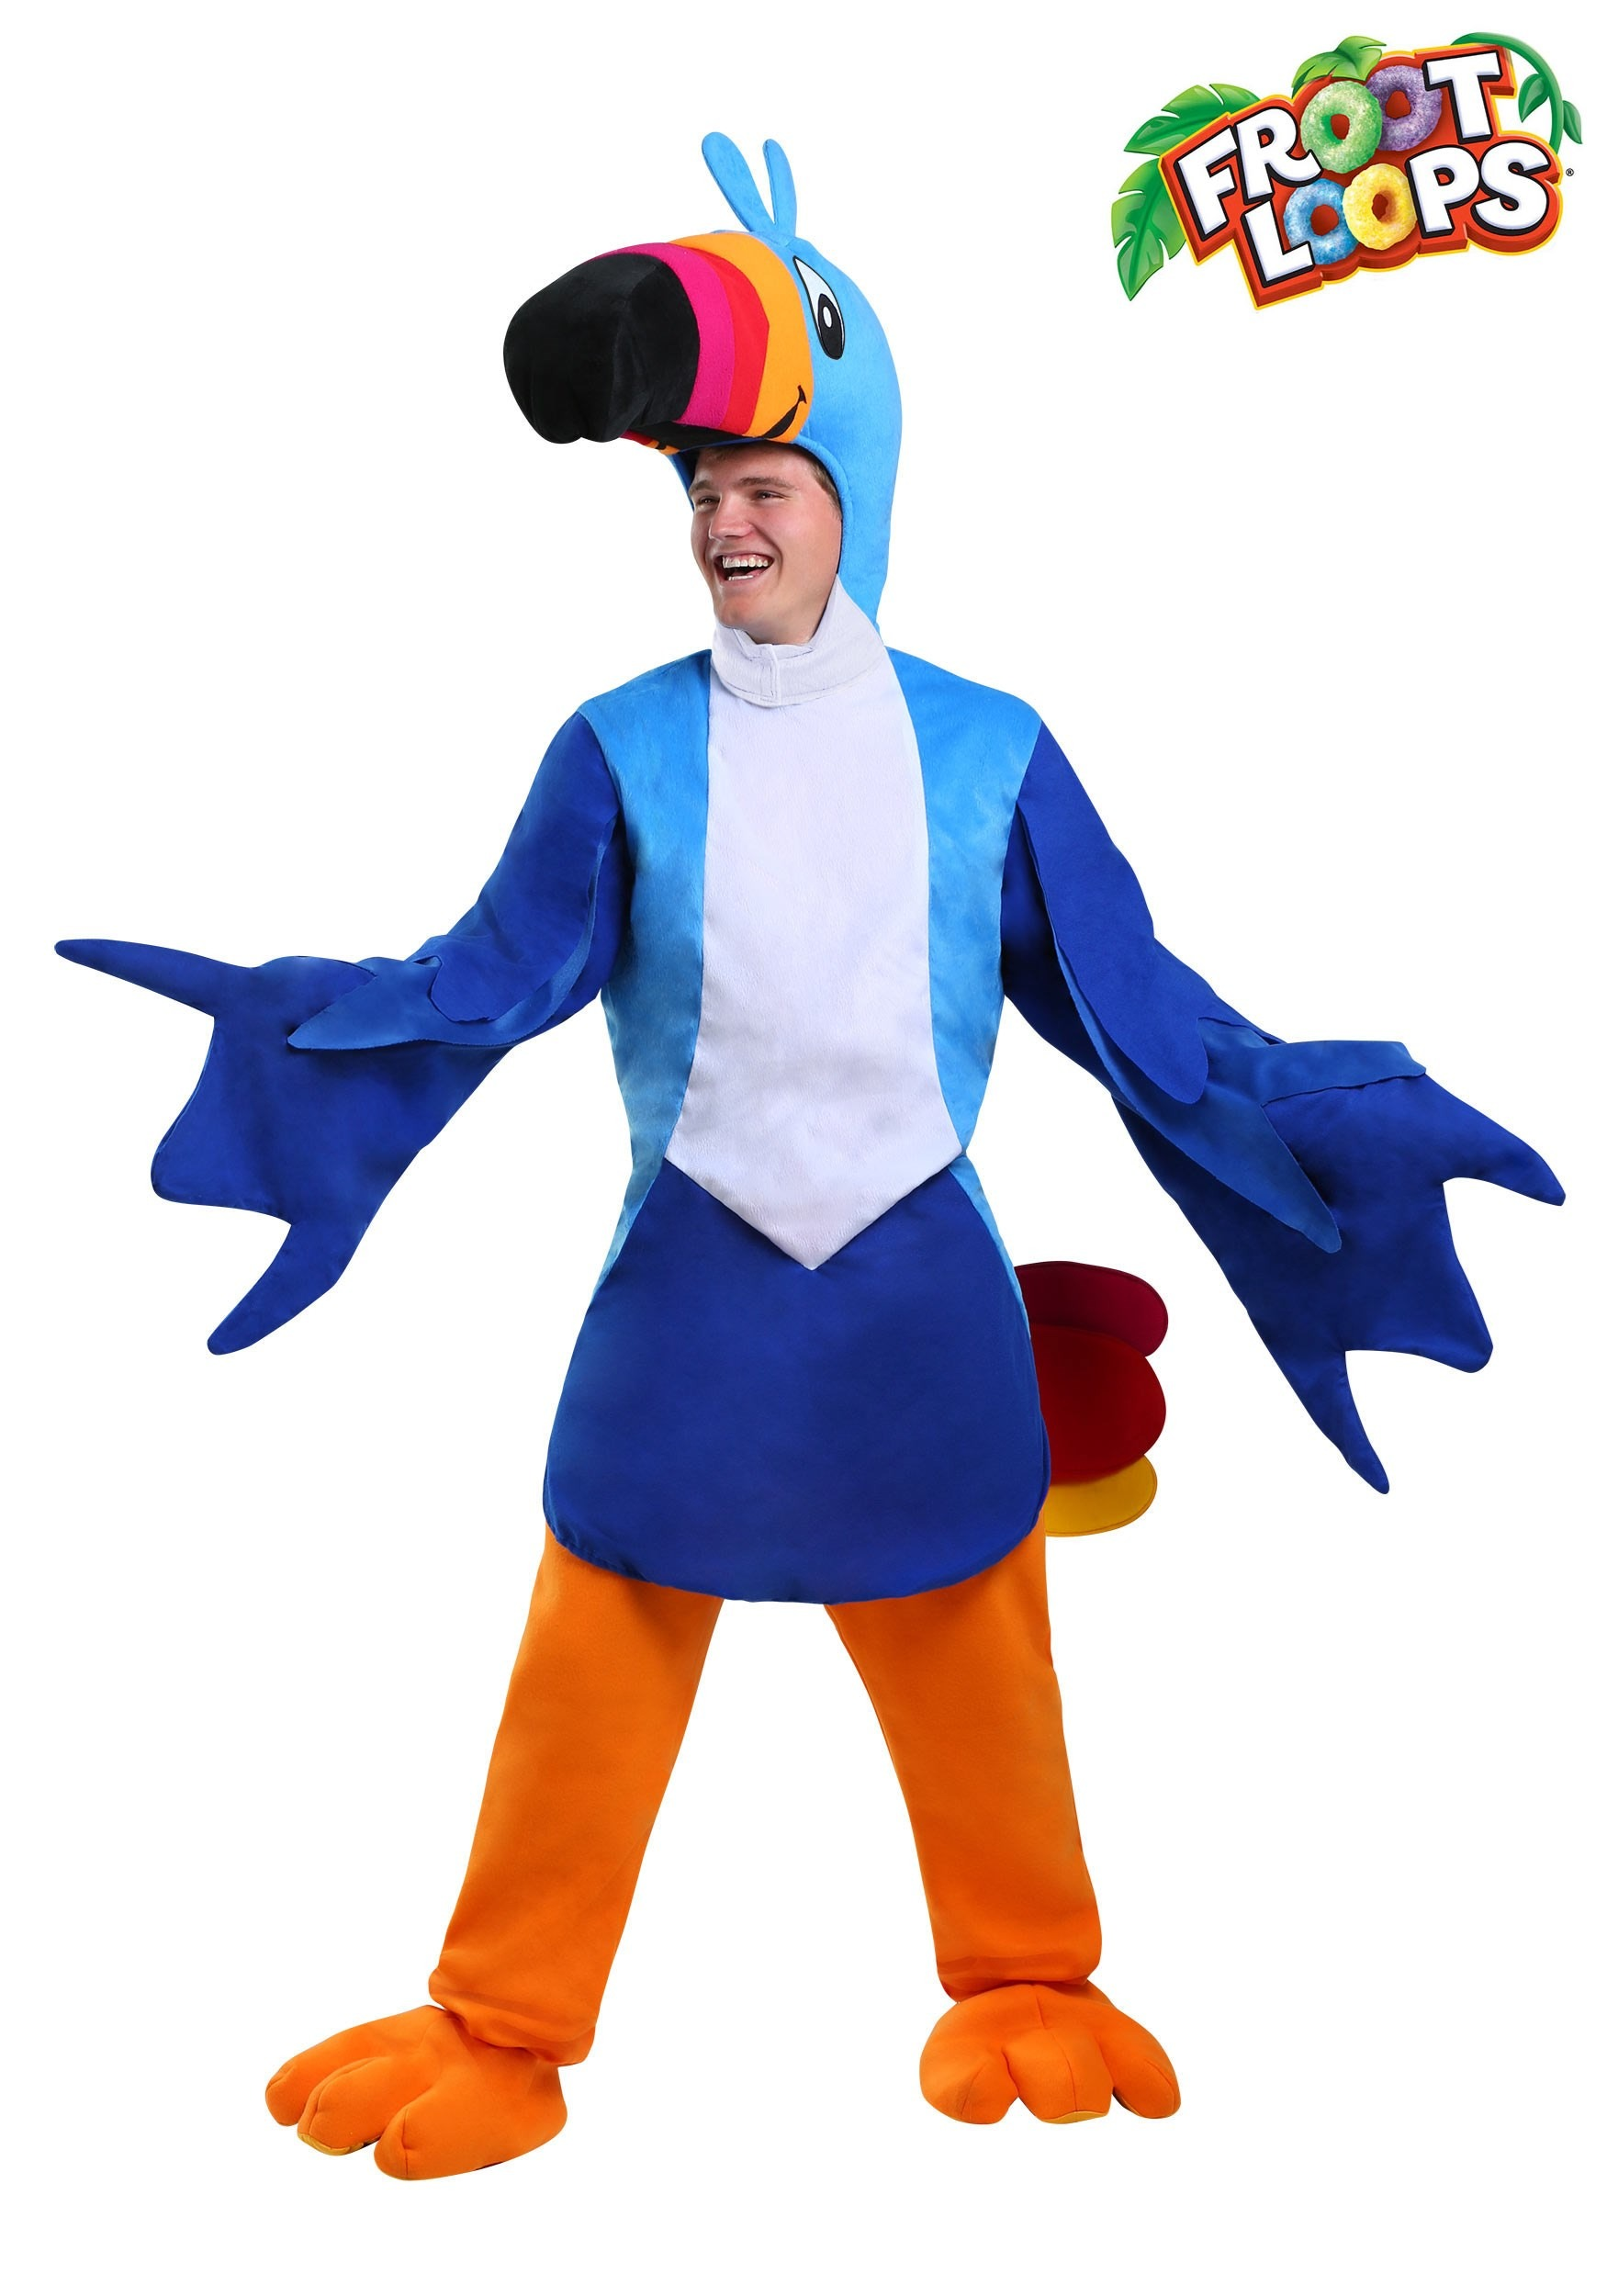 Results 181 240 of 644 for indoor halloween decorations - Toucan Sam Adult Costume